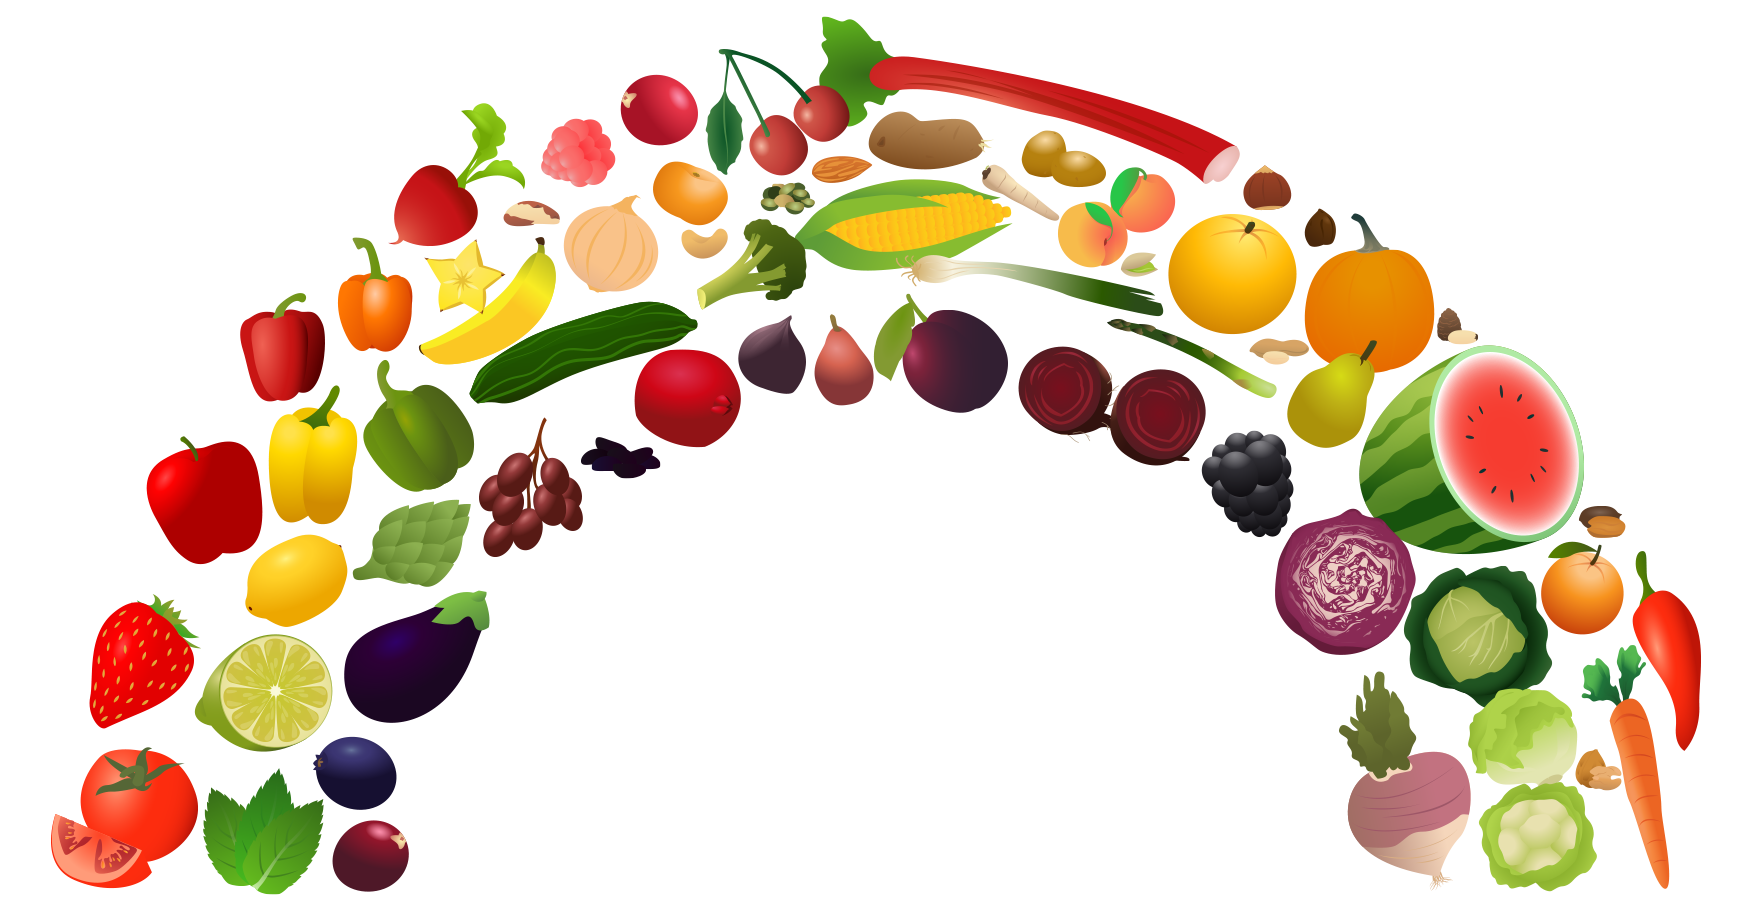 Food clipart transparent png image free download Healthy food clipart png - ClipartFox image free download